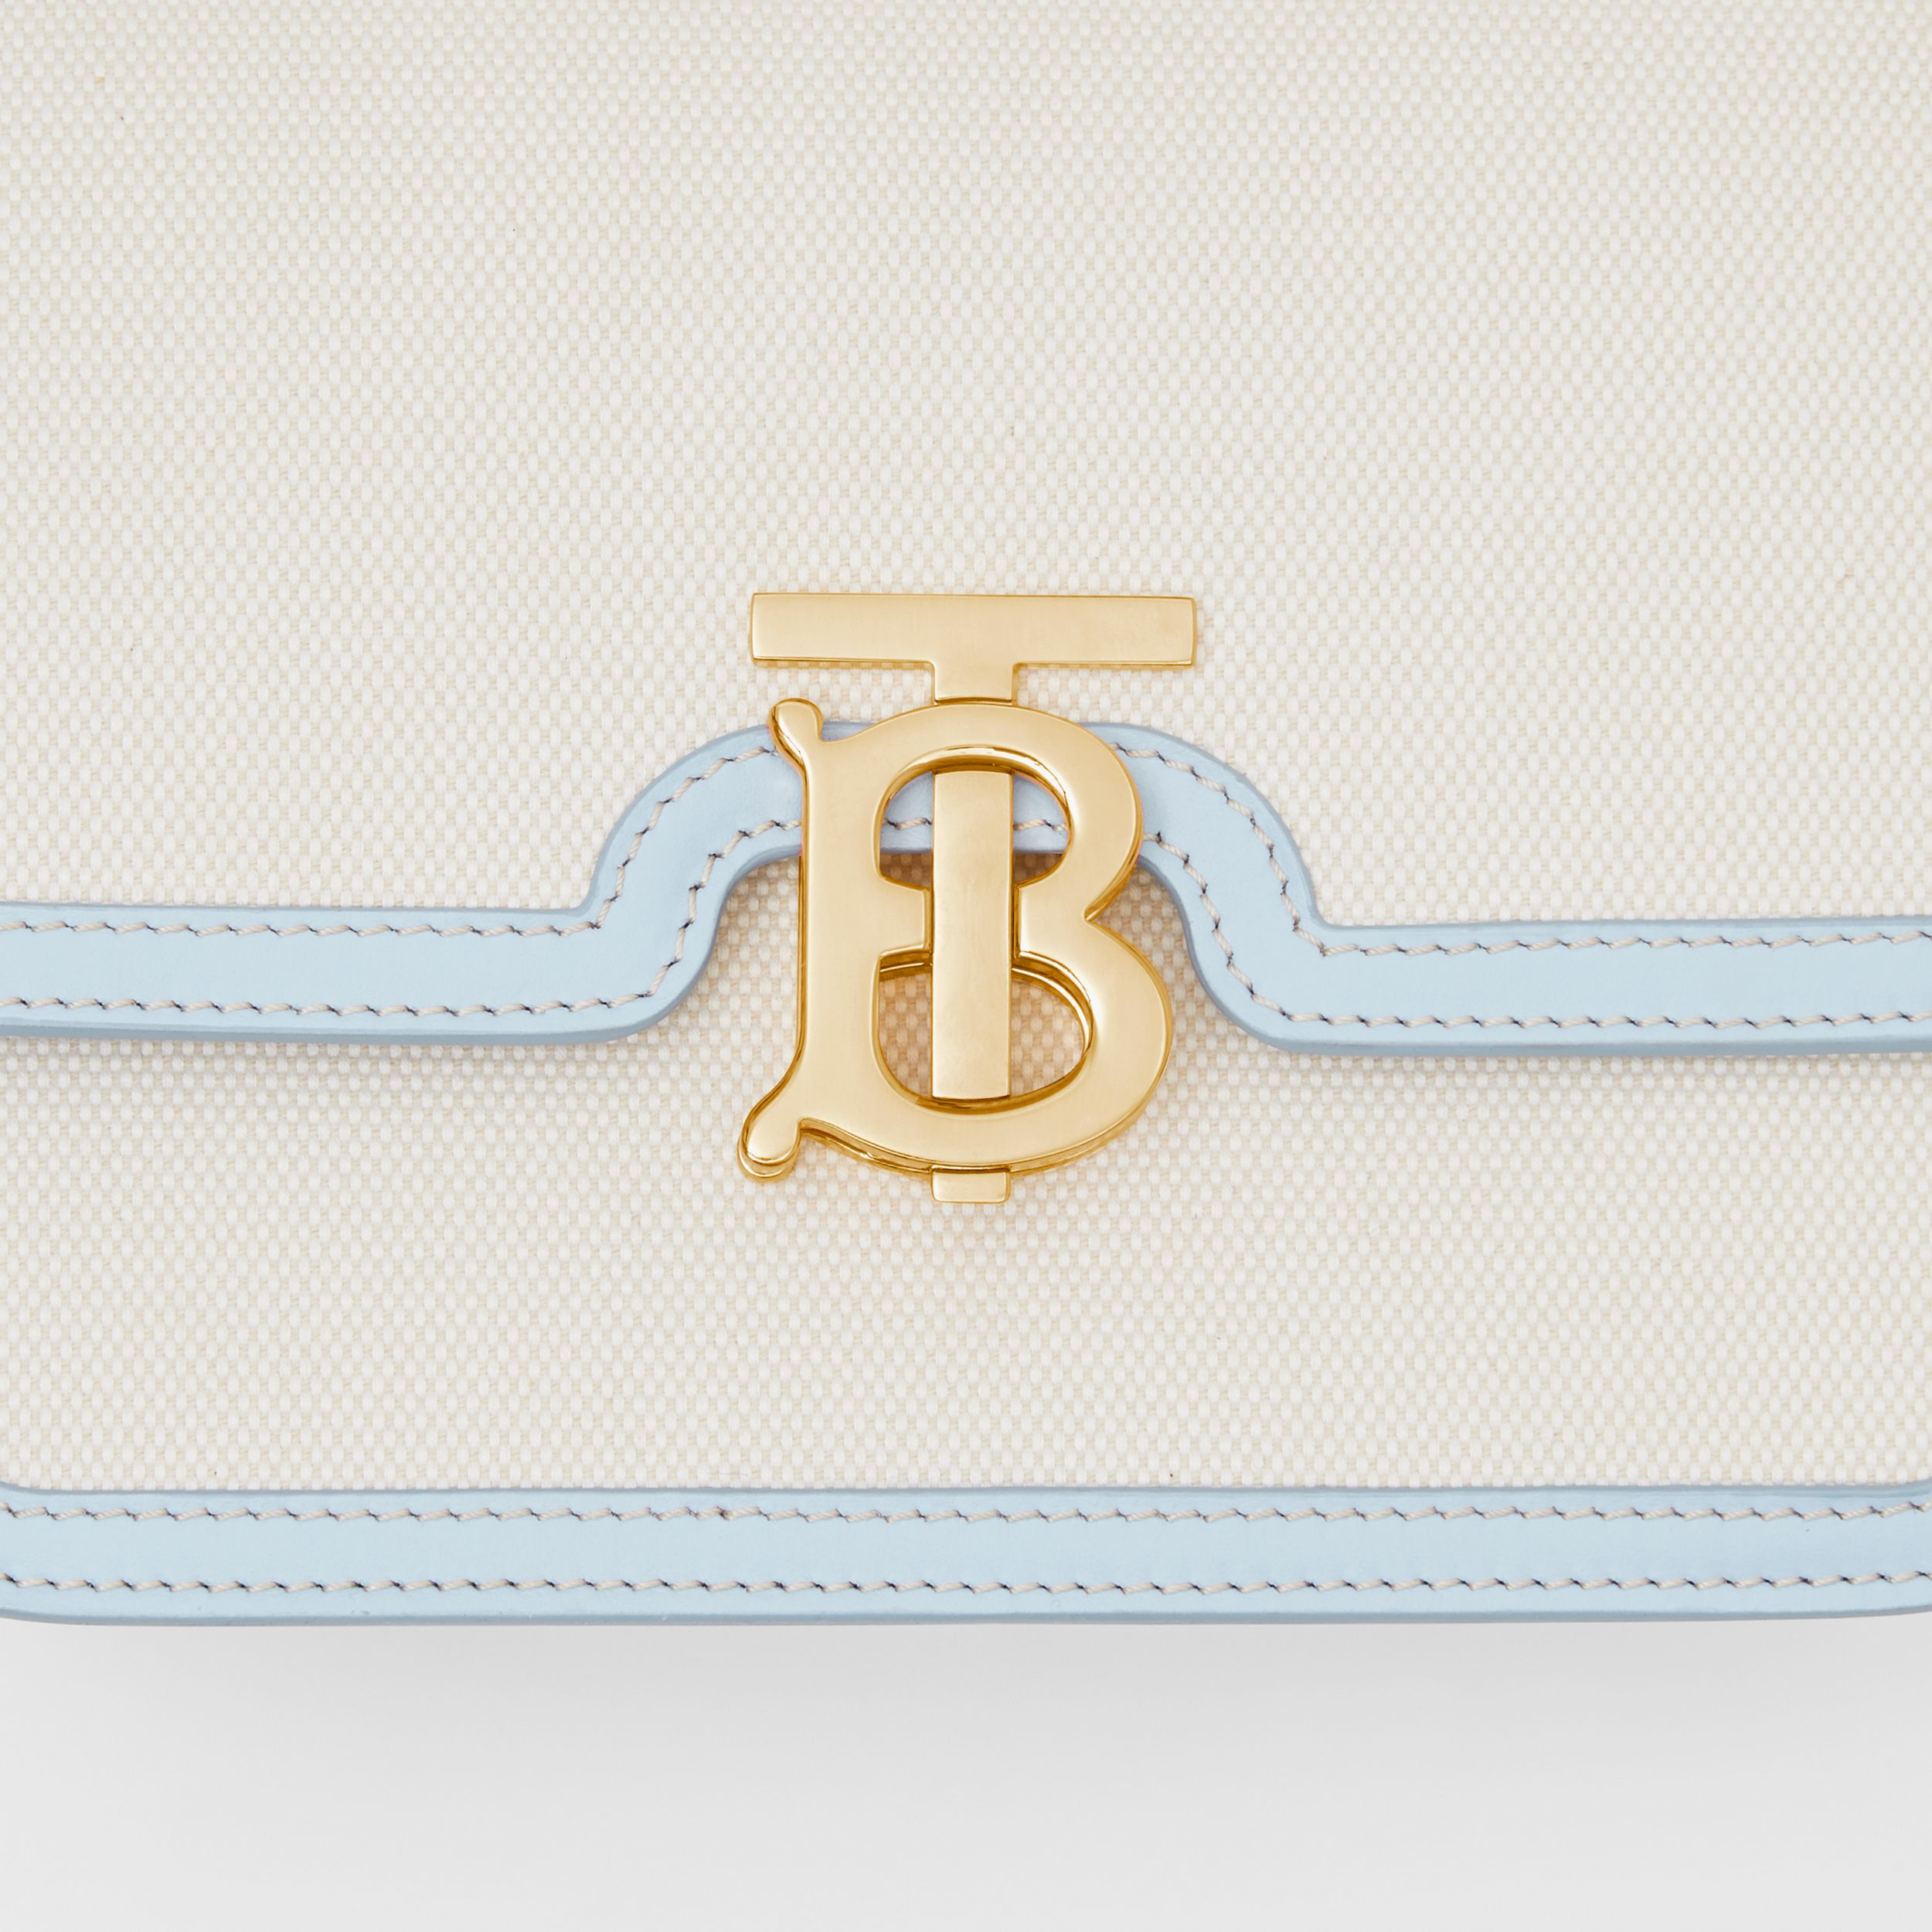 Small Two-tone Canvas and Leather TB Bag in Natural/pale Blue - Women | Burberry - 2